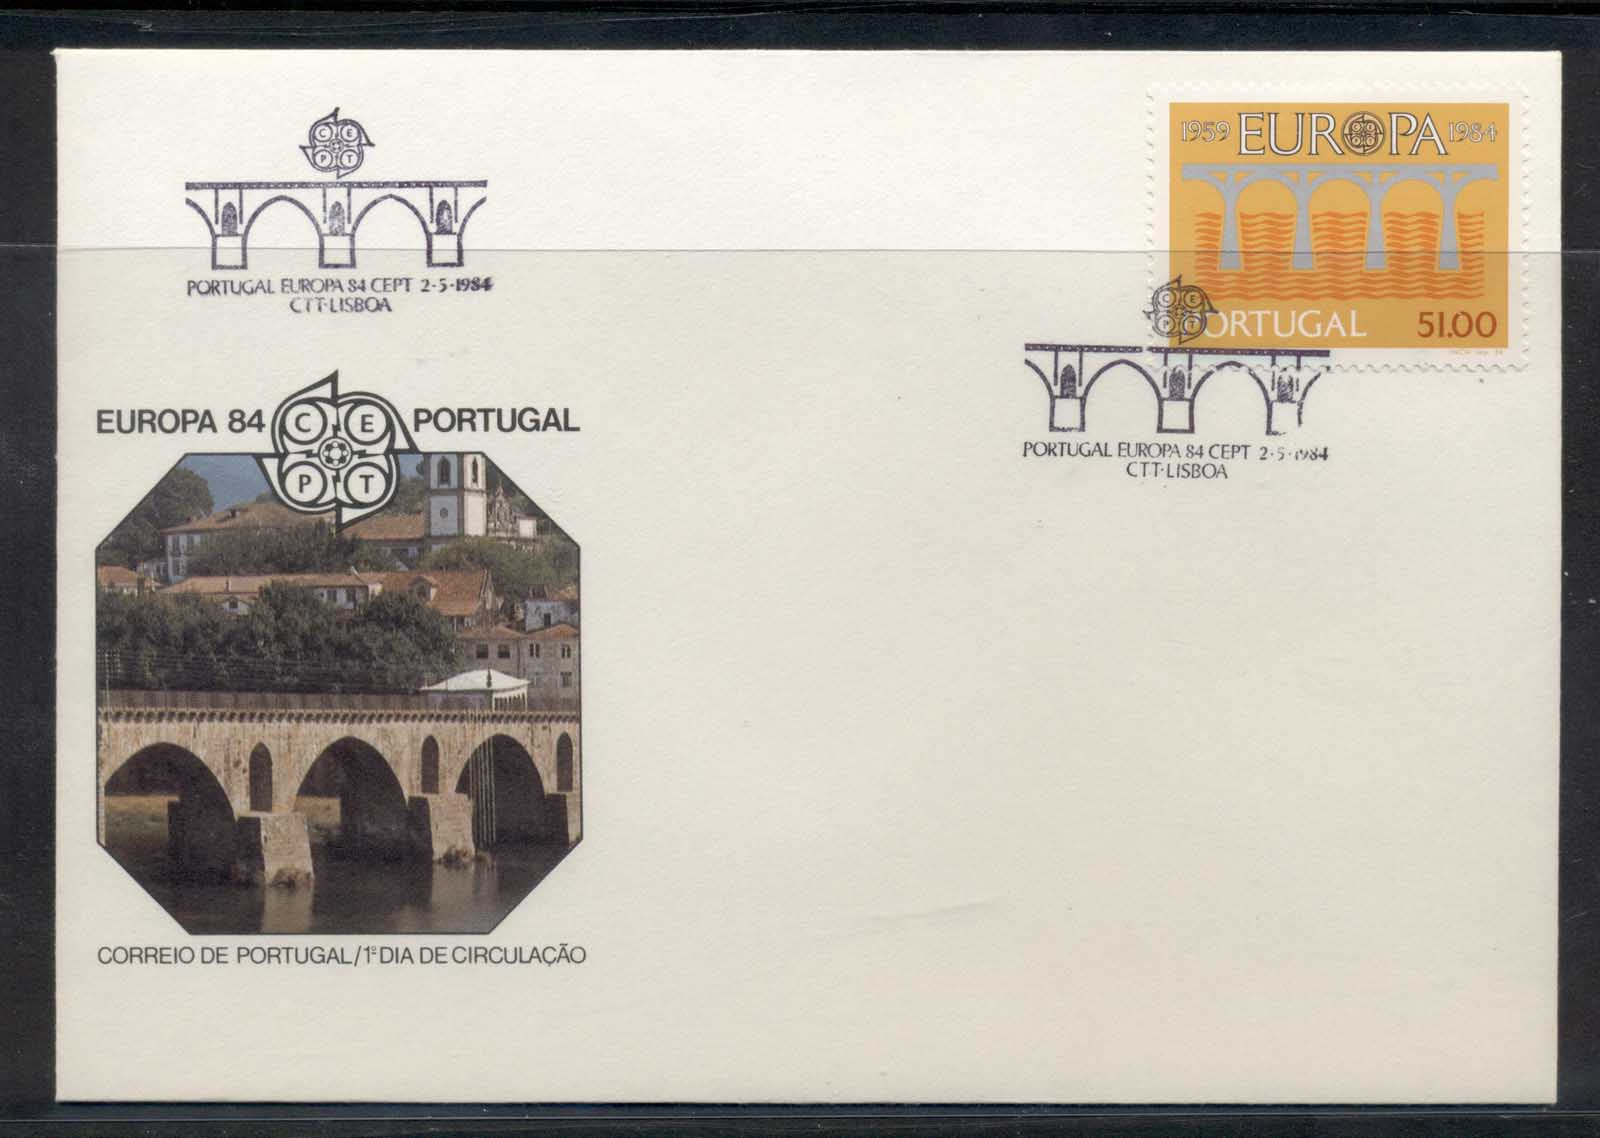 Portugal 1984 Europa Bridge FDC